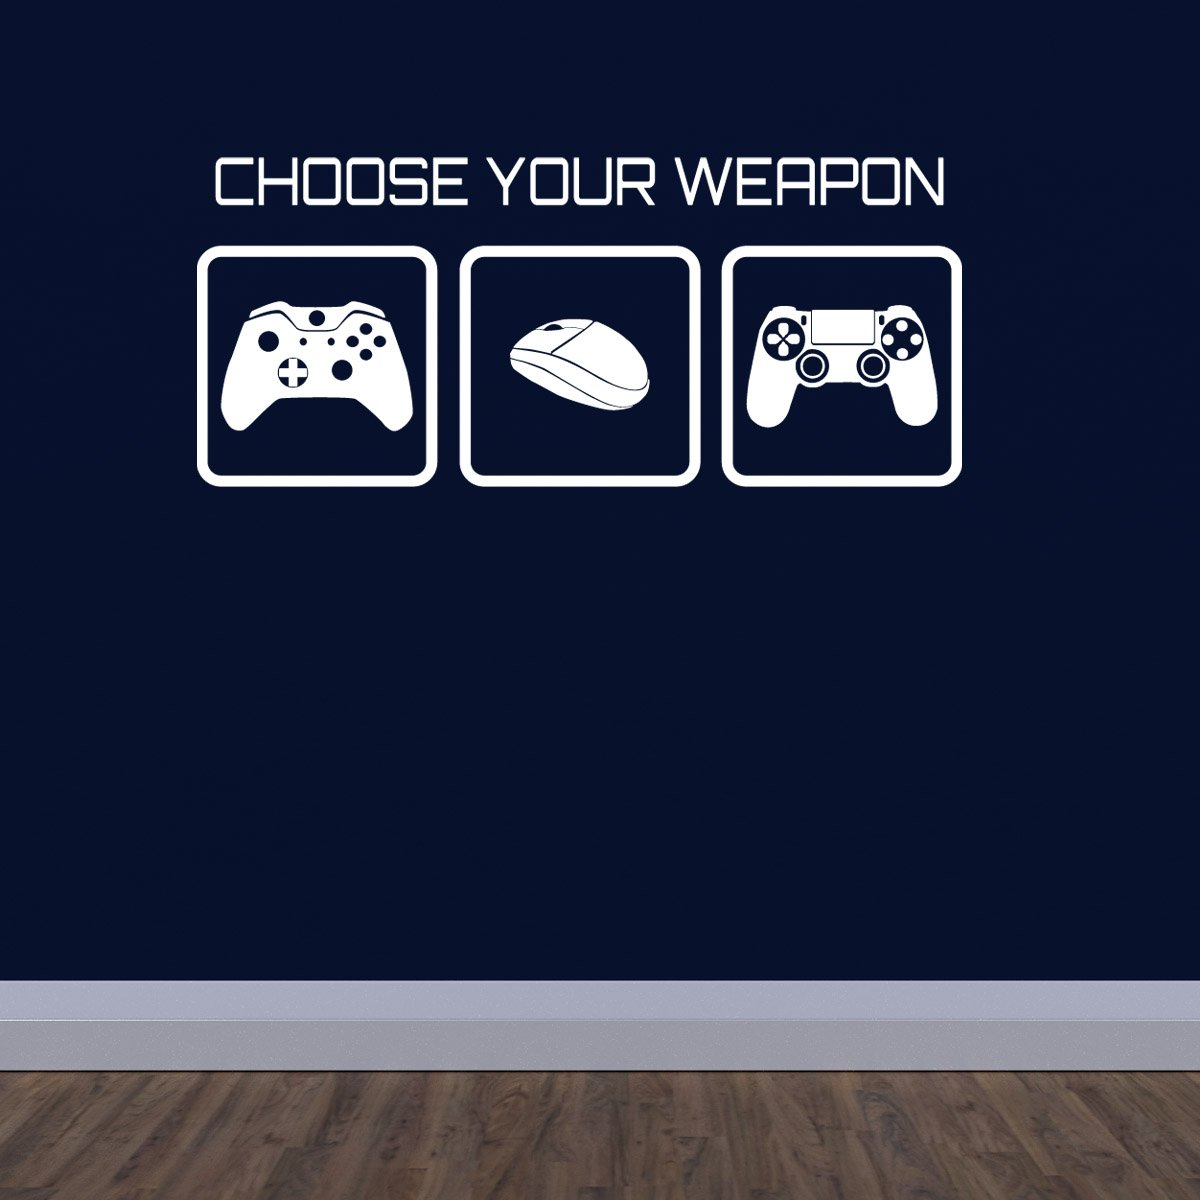 Large gaming wall sticker choose your weapon video game wall large gaming wall sticker choose your weapon video game wall decal amazon kitchen home amipublicfo Choice Image